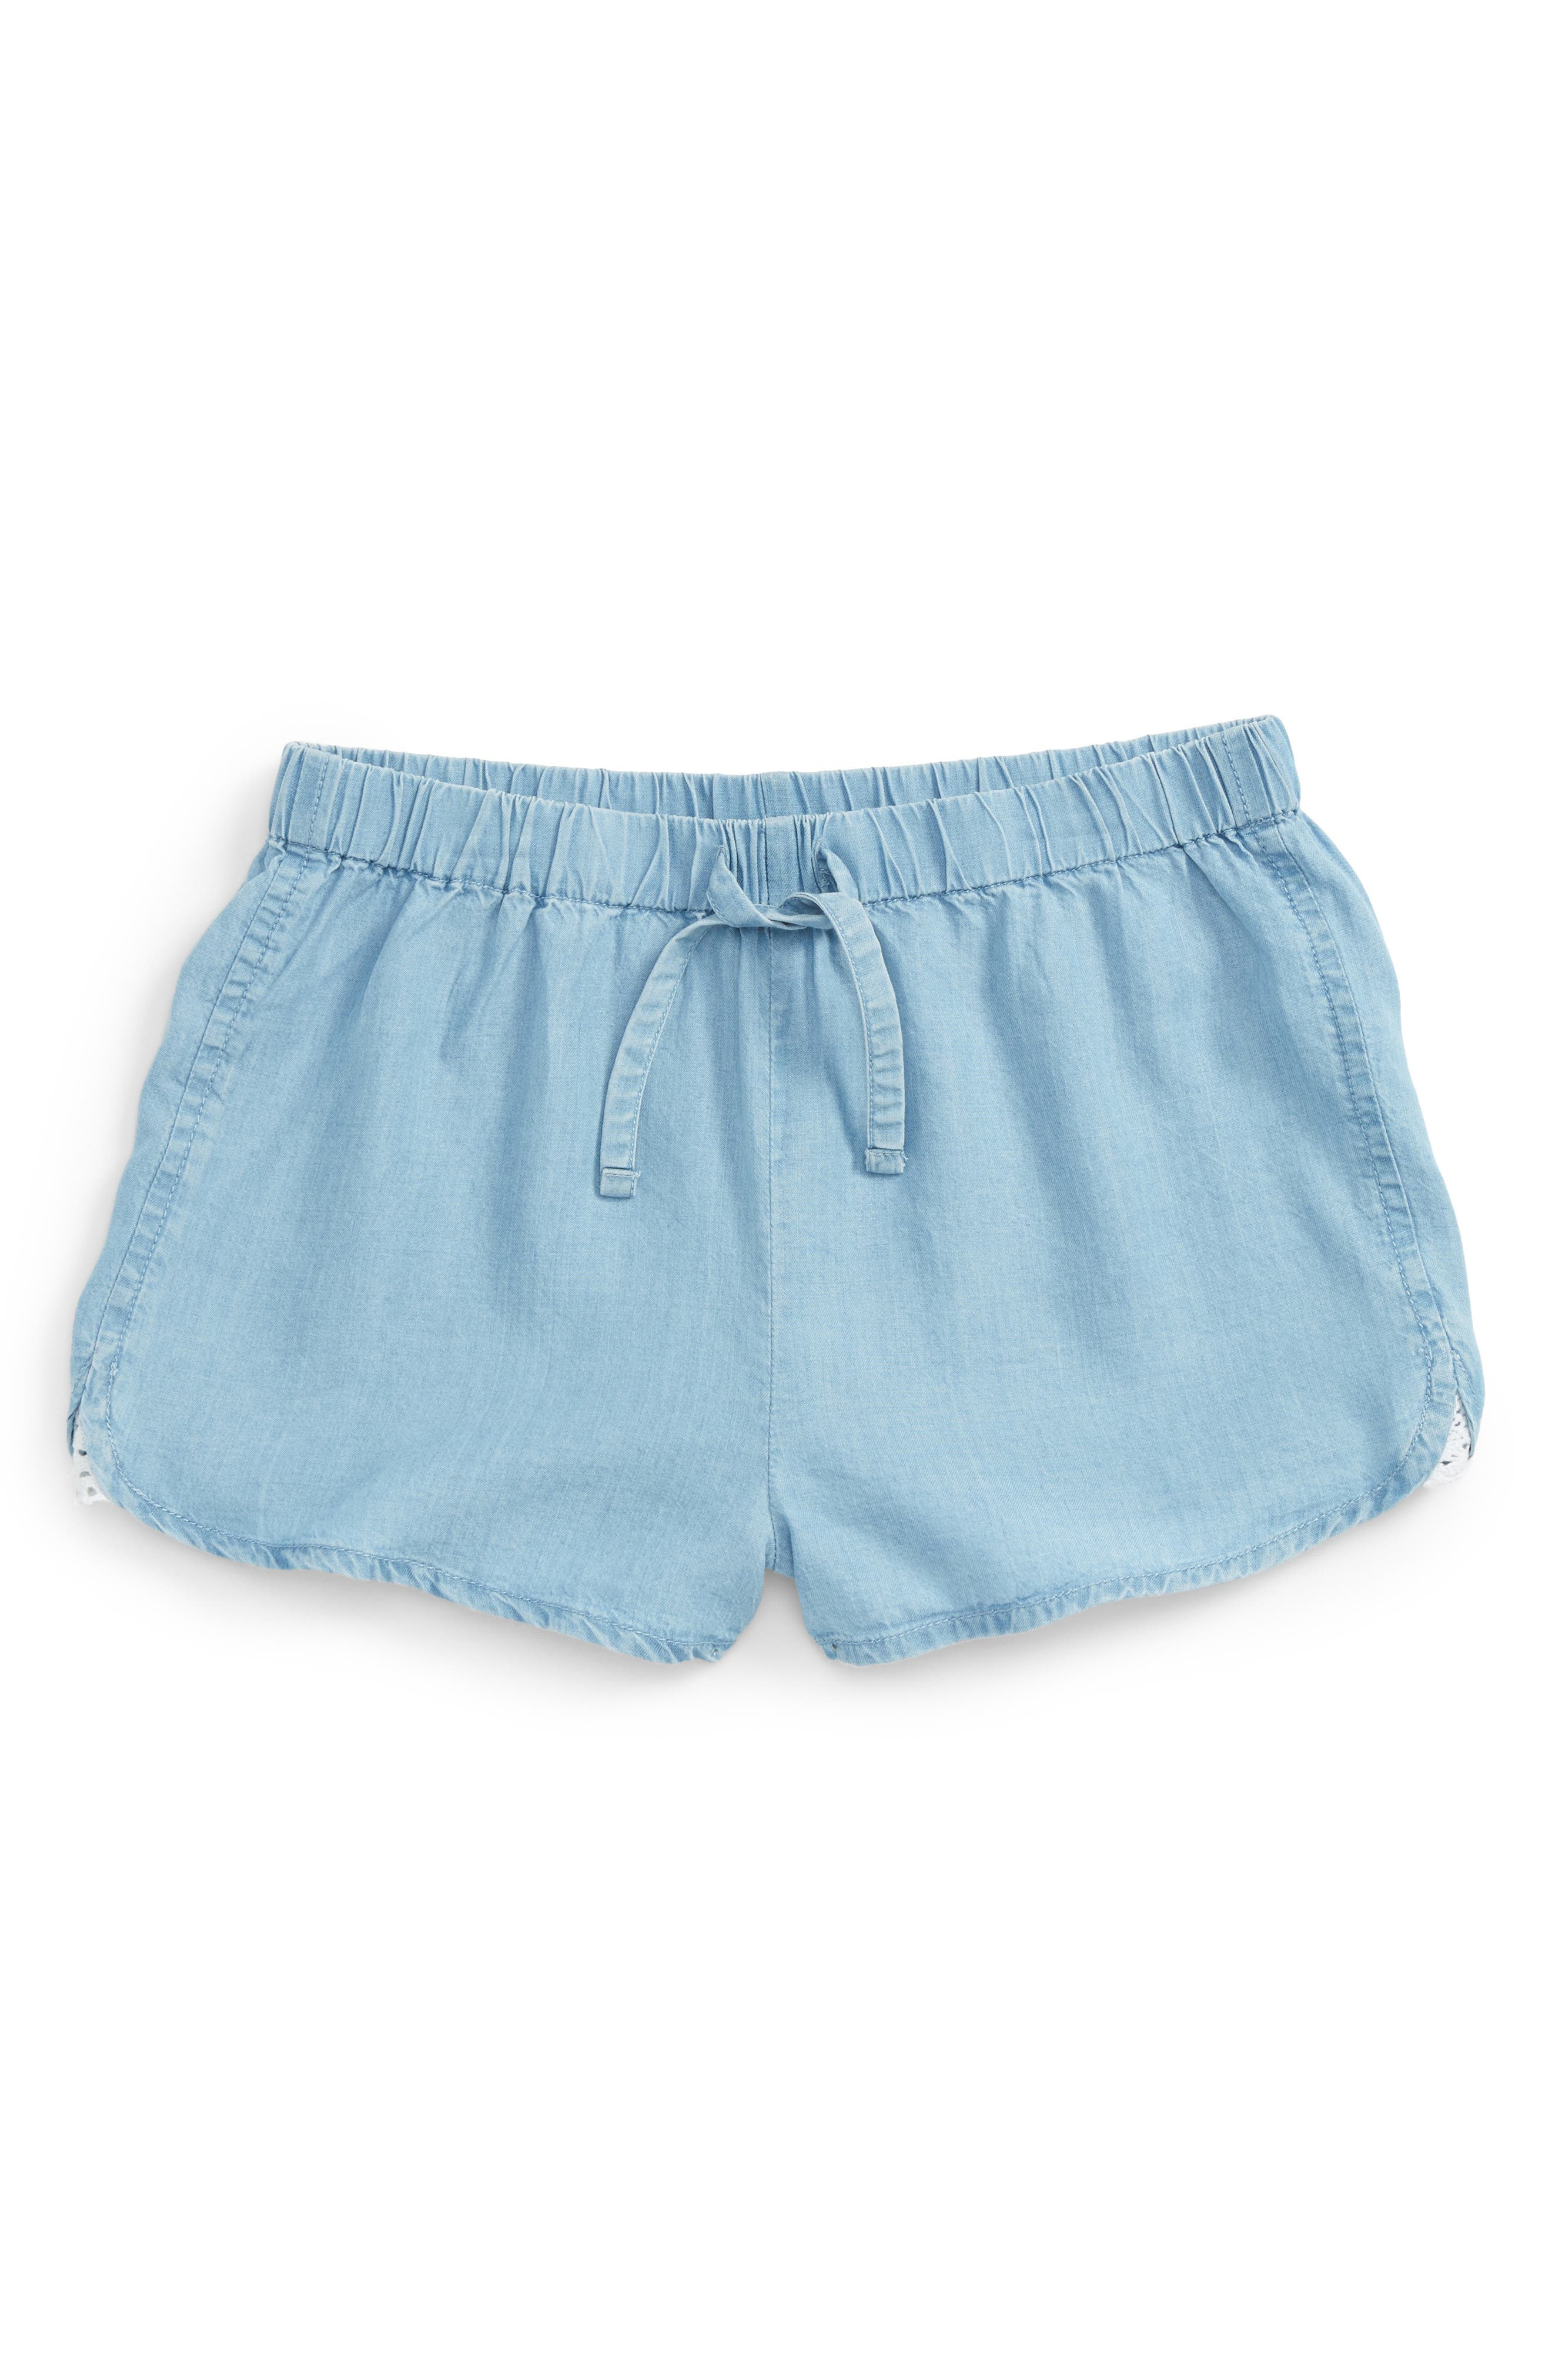 Tucker + Tate Chambray Shorts (Big Girls)